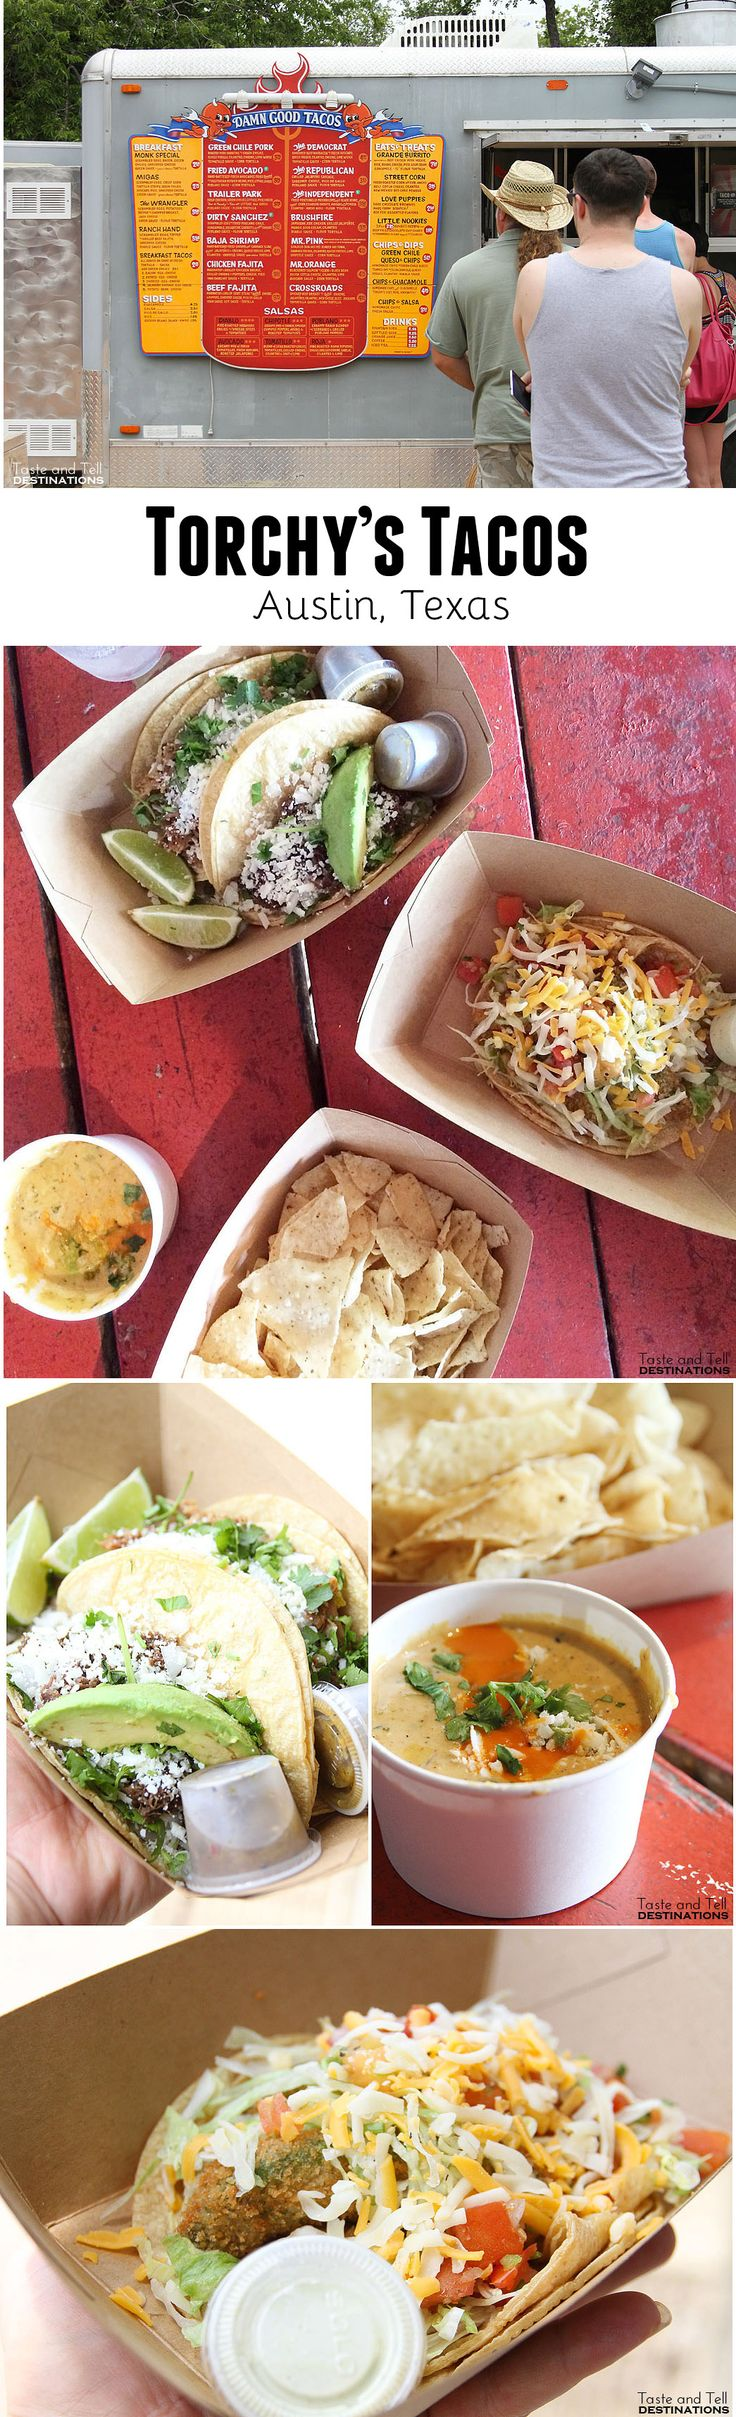 Torchy's Tacos in Austin, Texas - a must for tacos in Texas!!